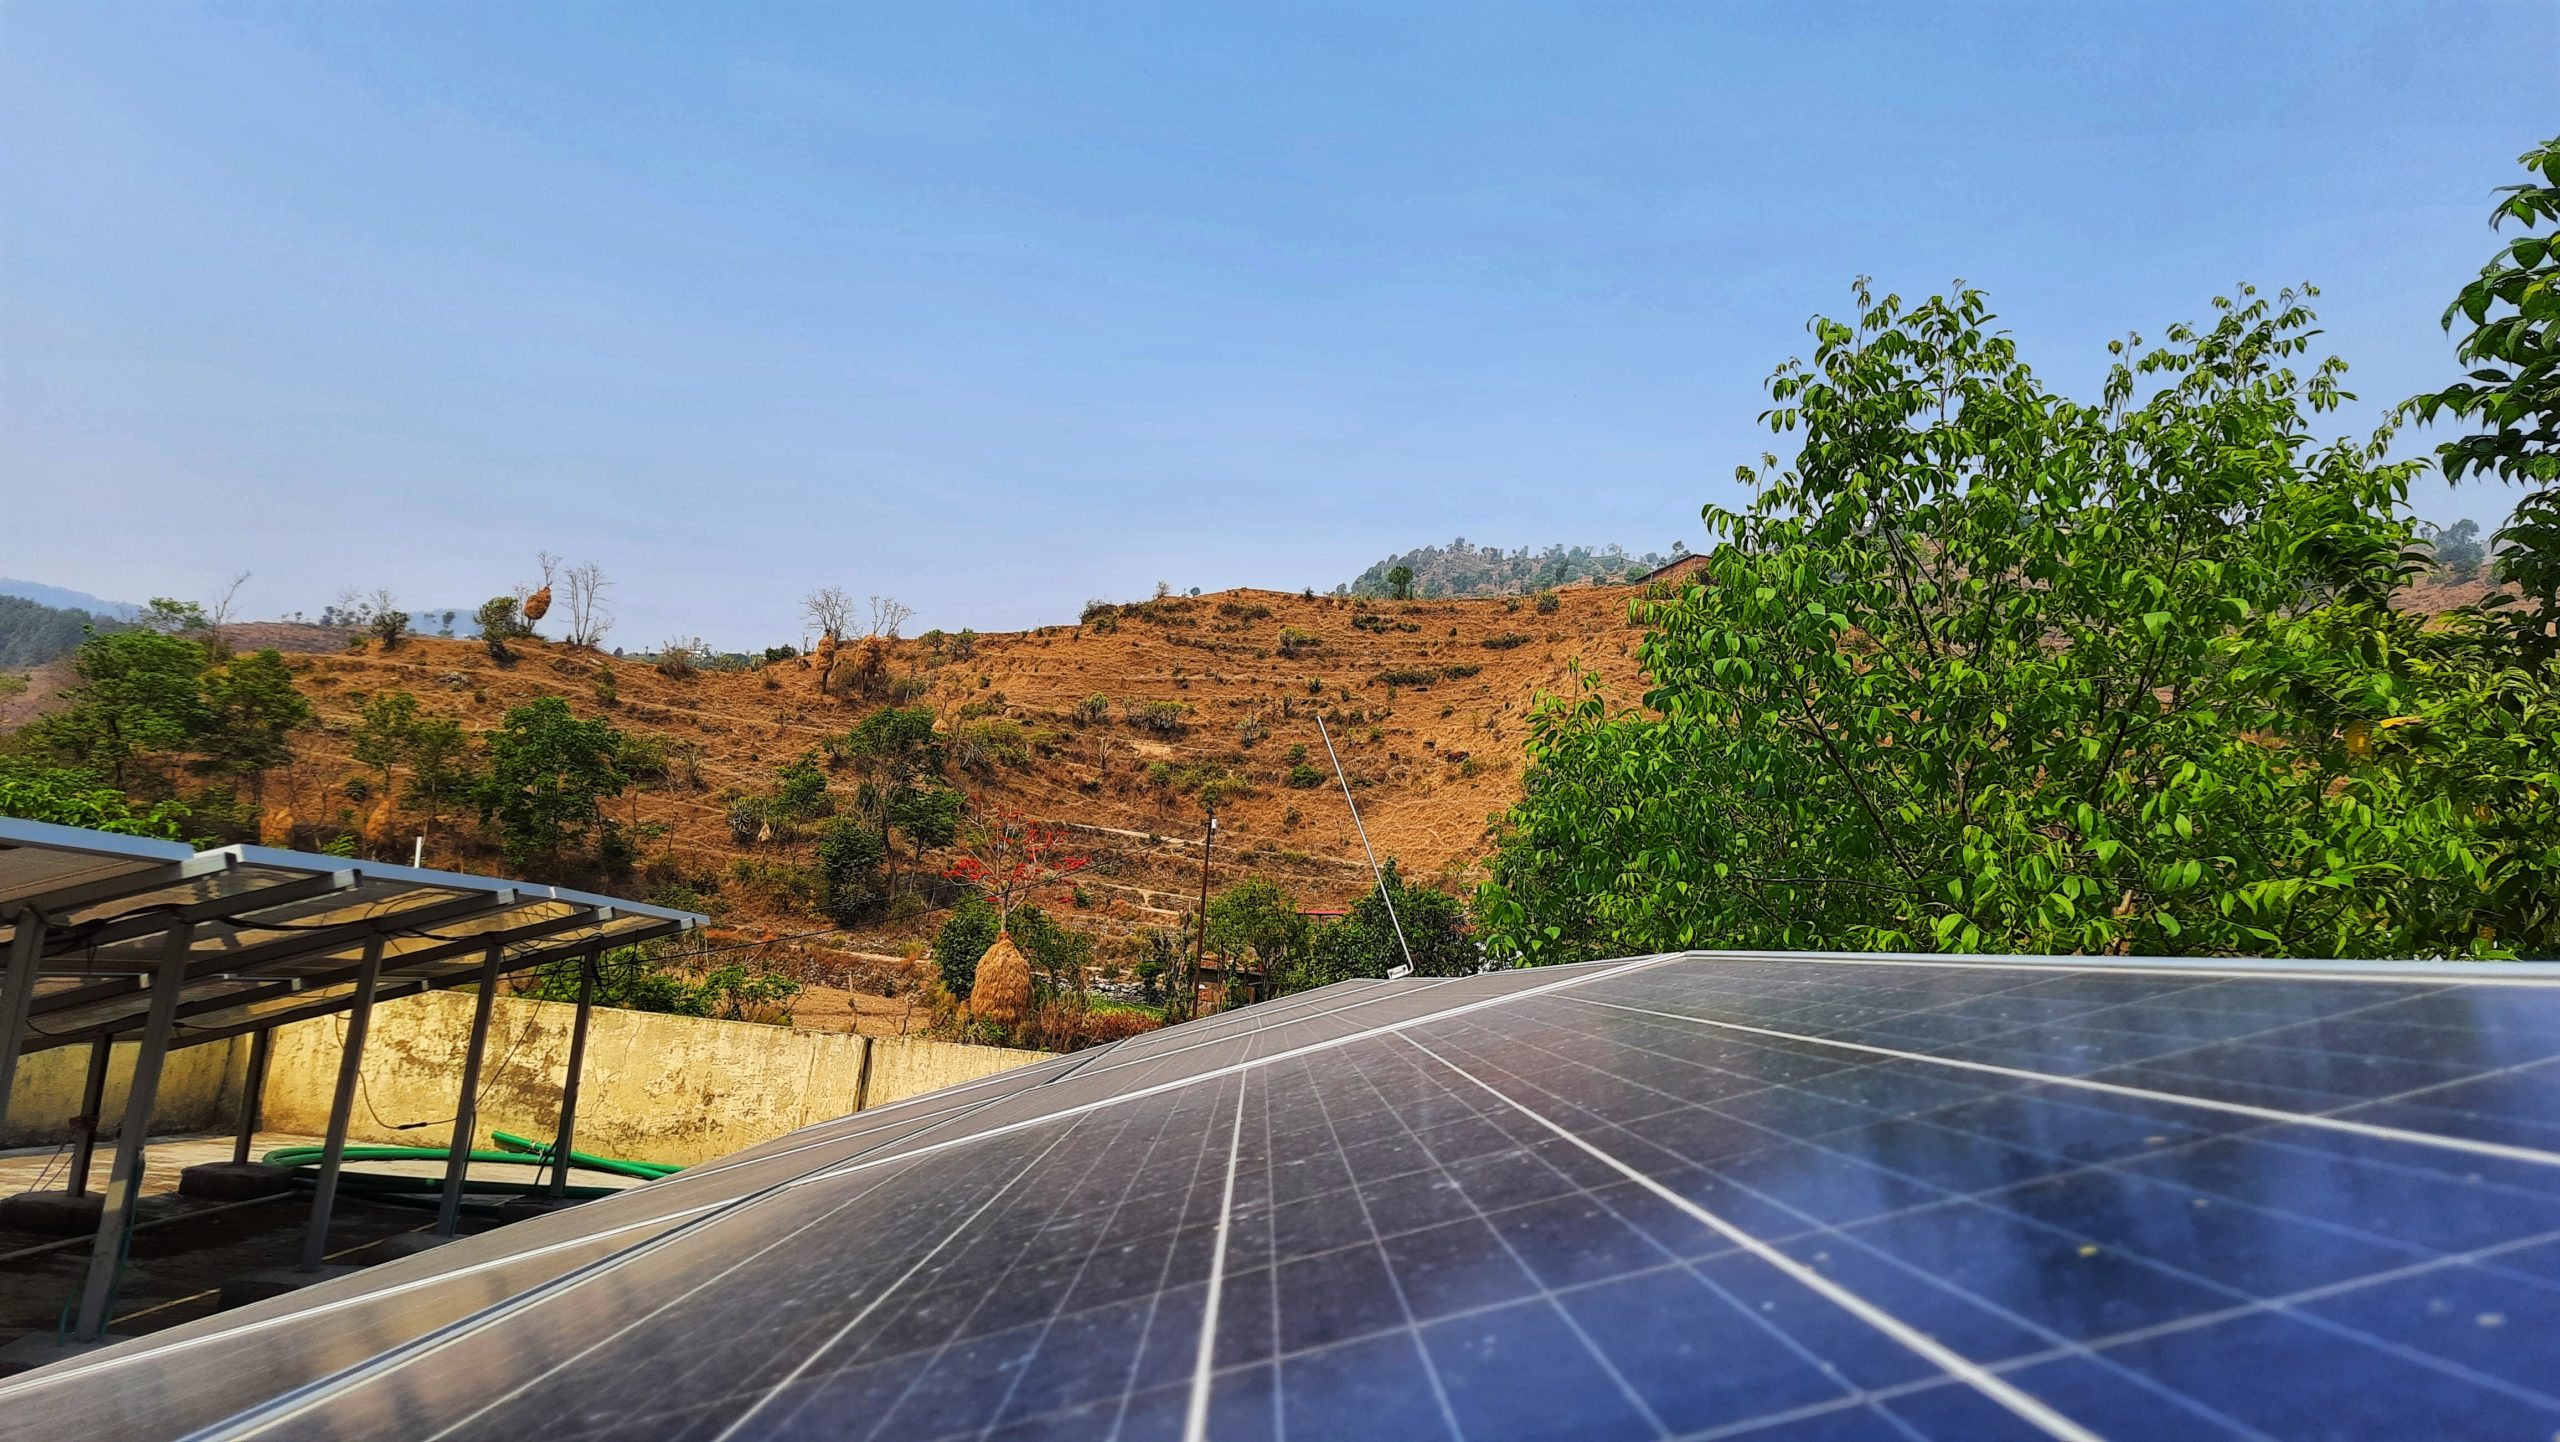 solar self-employment scheme was aimed to cater to the interests of the jobless migrants returning to their villages.. Photo by Varsha SIngh